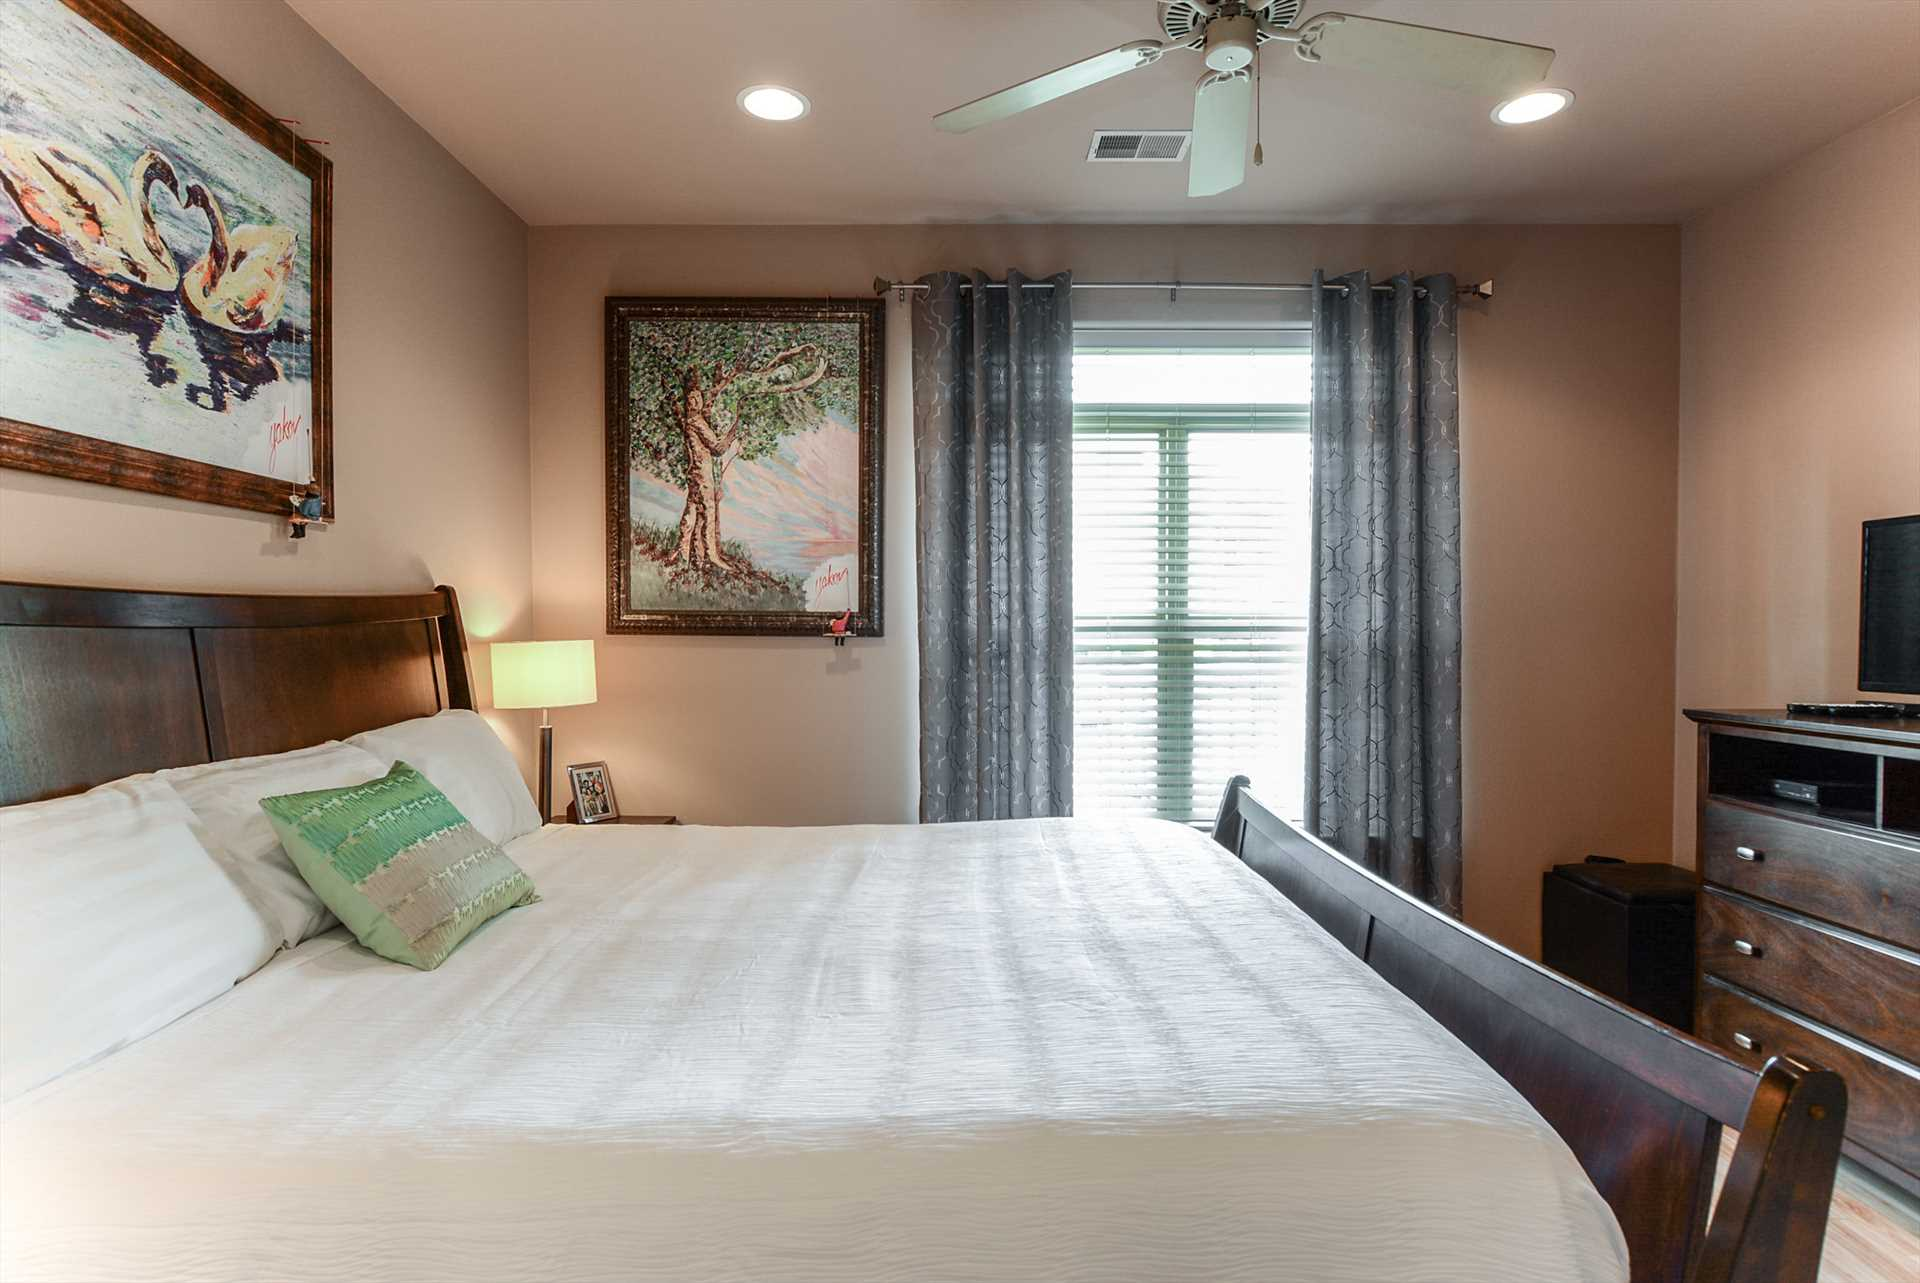 Each bedroom in this unit comes with a flat screen televisio